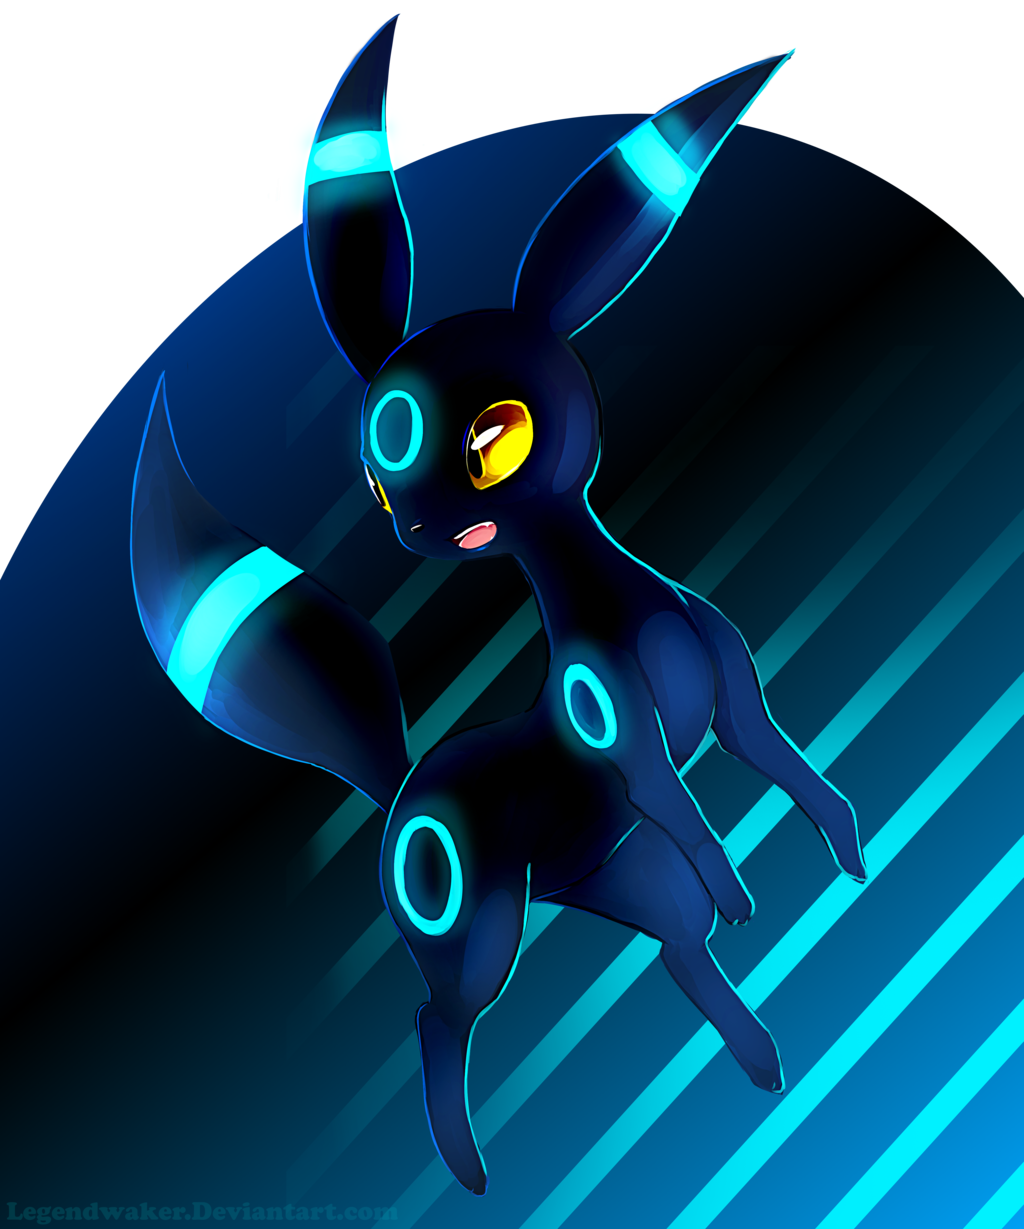 Shiny Umbreon By LegendWakerdeviantart On DeviantART